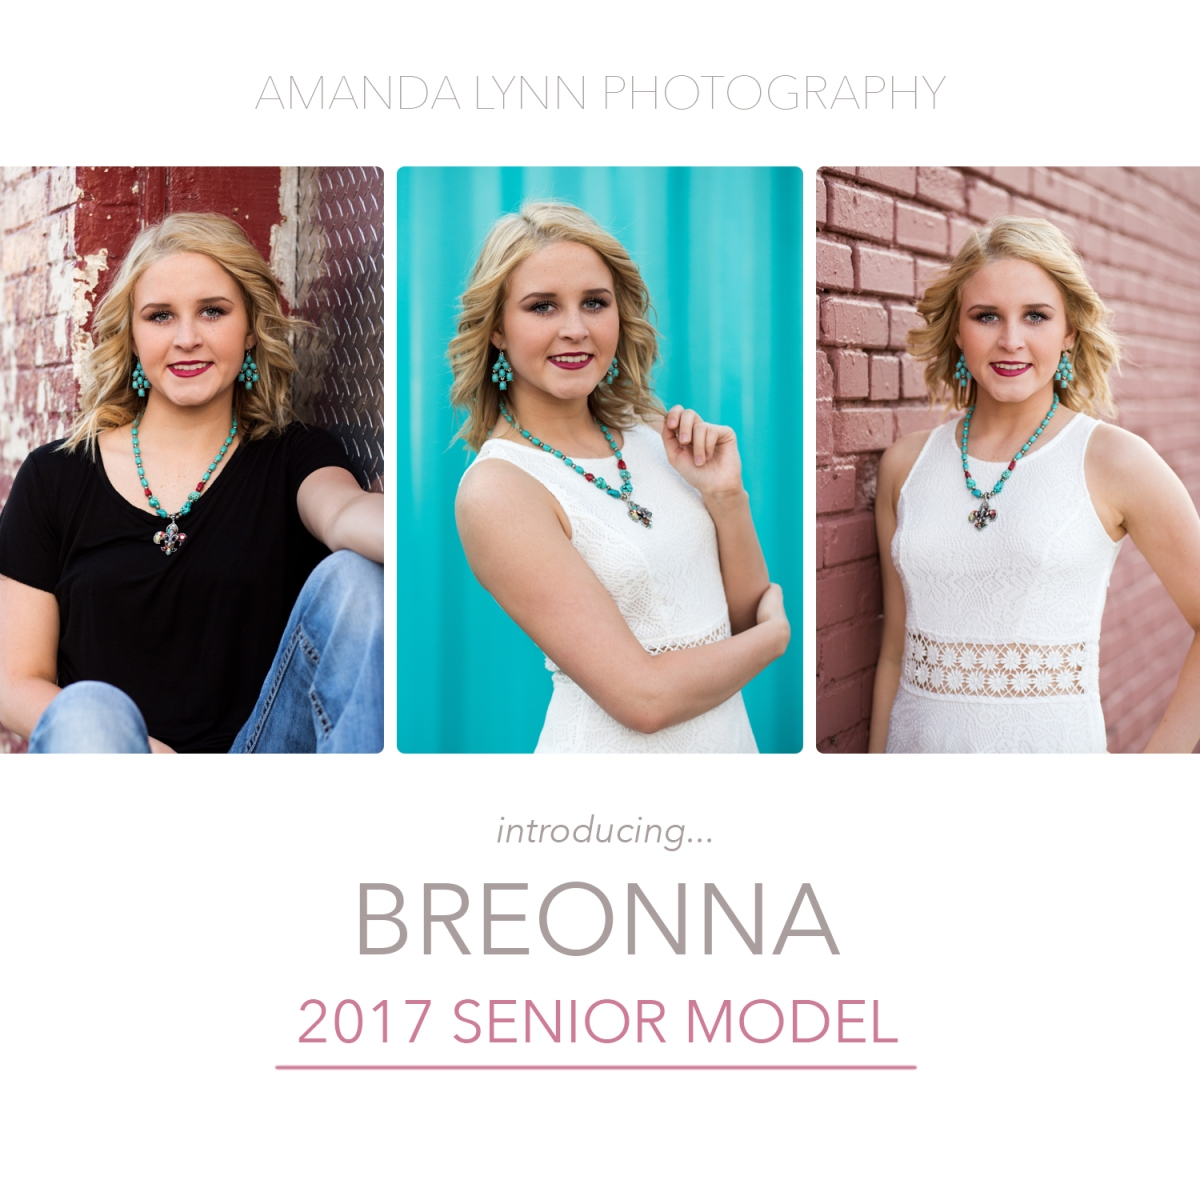 2017 Senior Rep for Amanda Lynn Photography